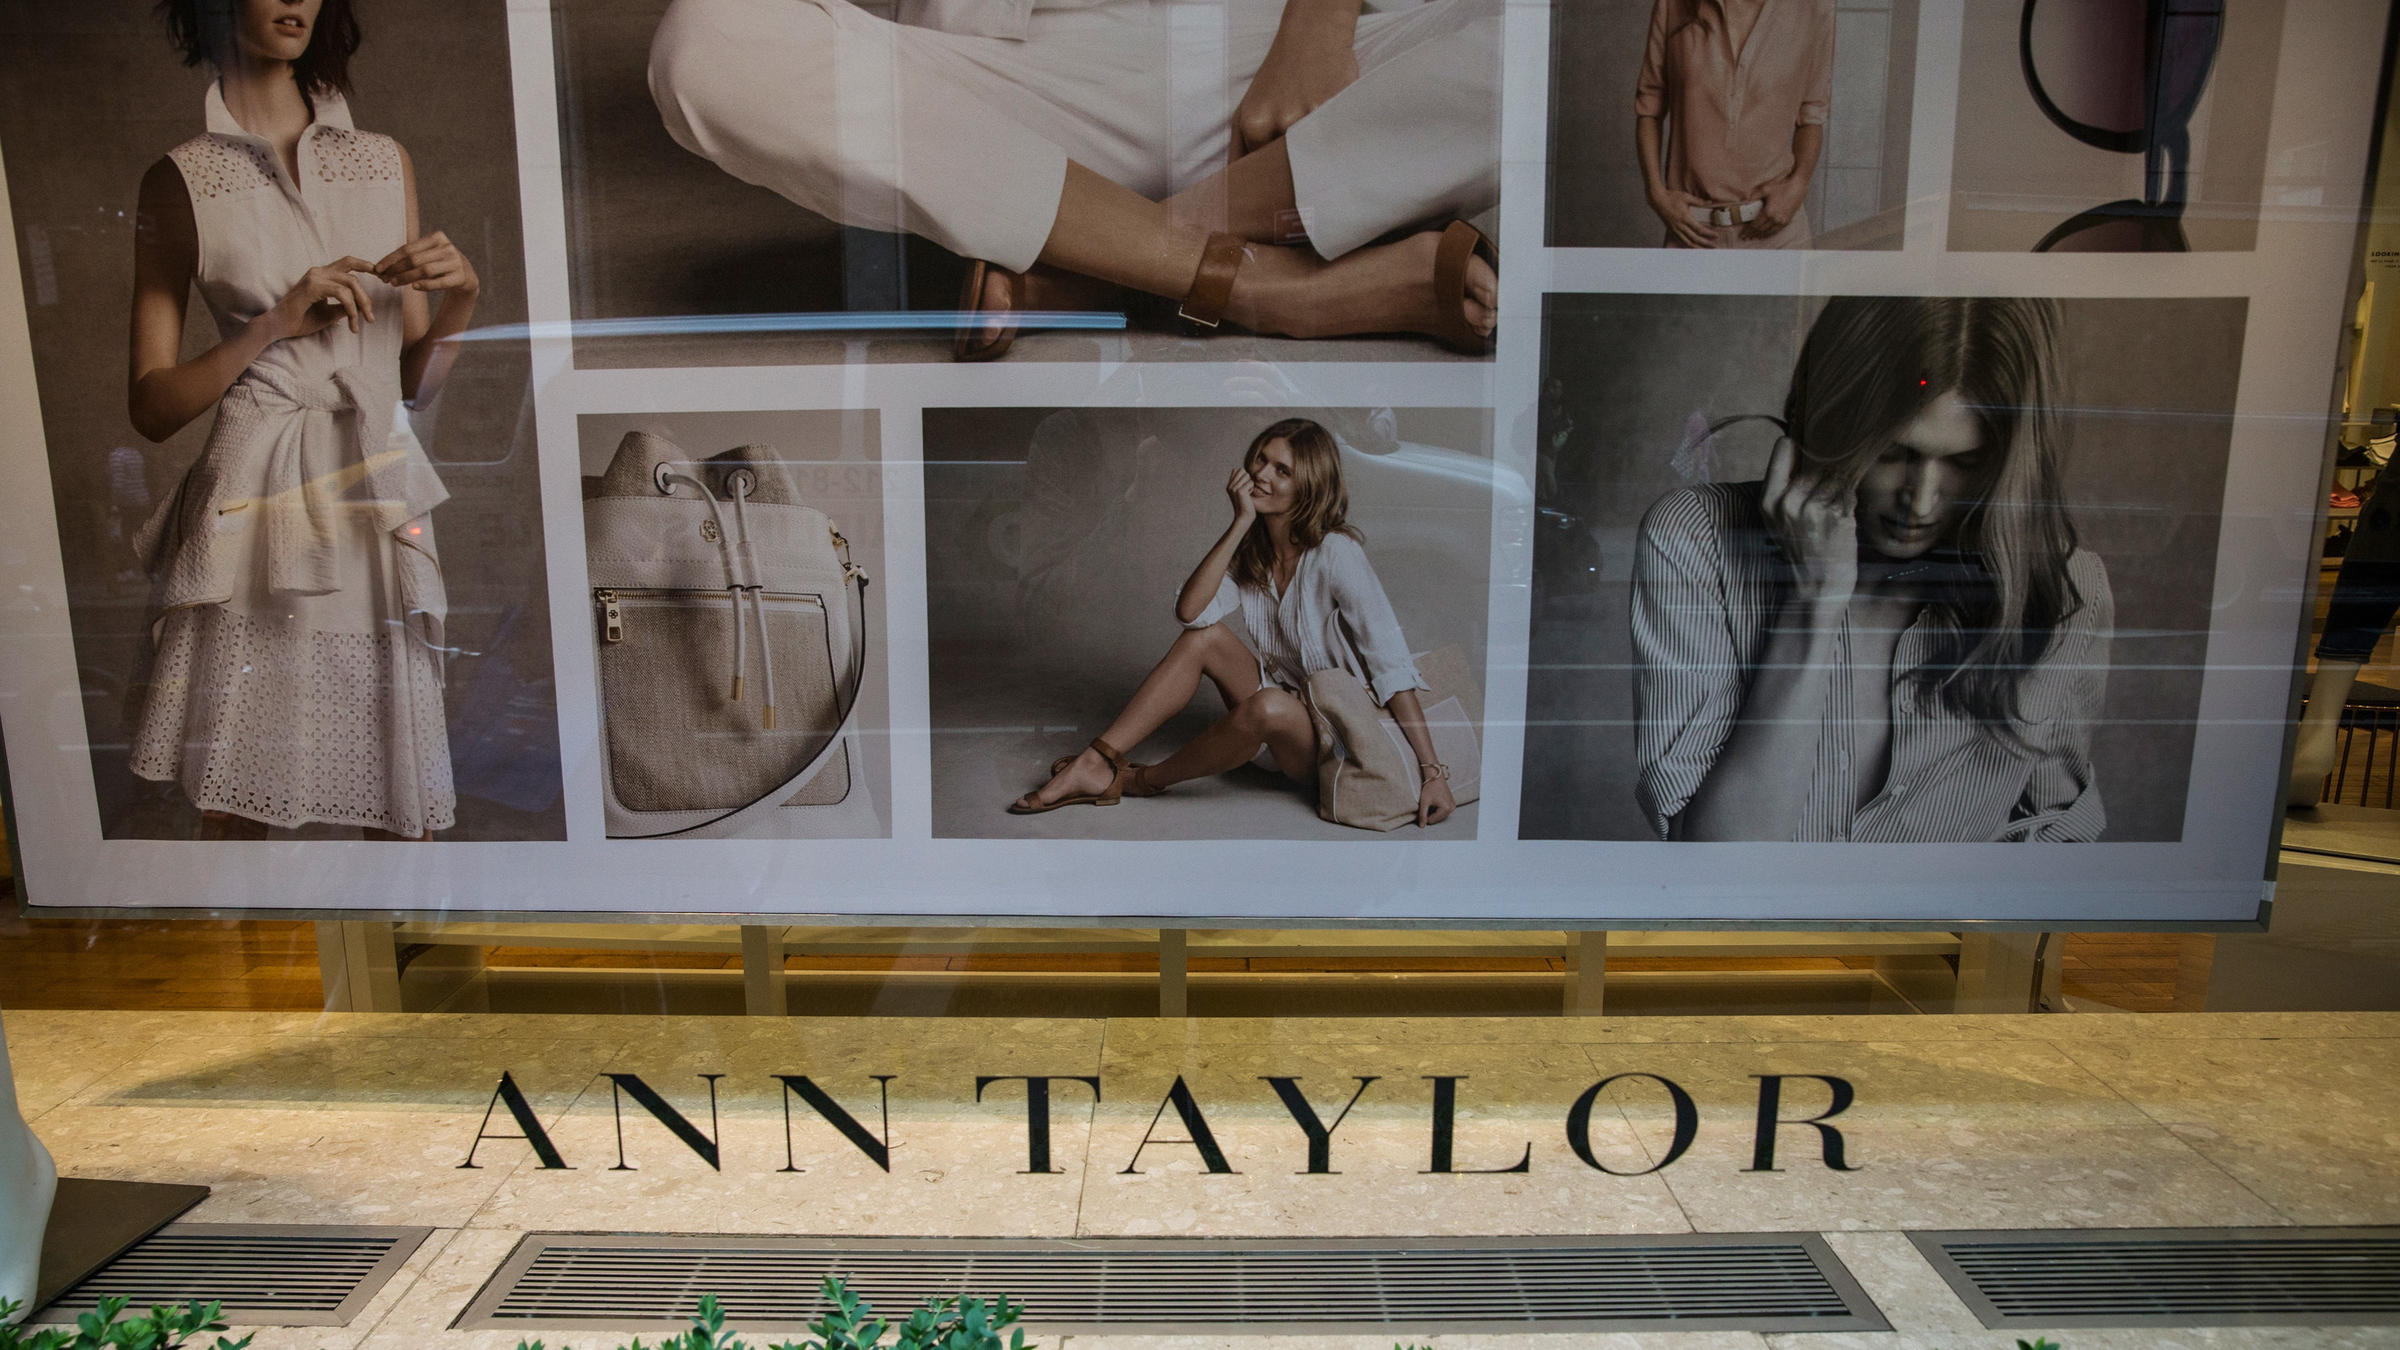 Ann Taylor, Lane Bryant owner files Chapter 11 bankruptcy